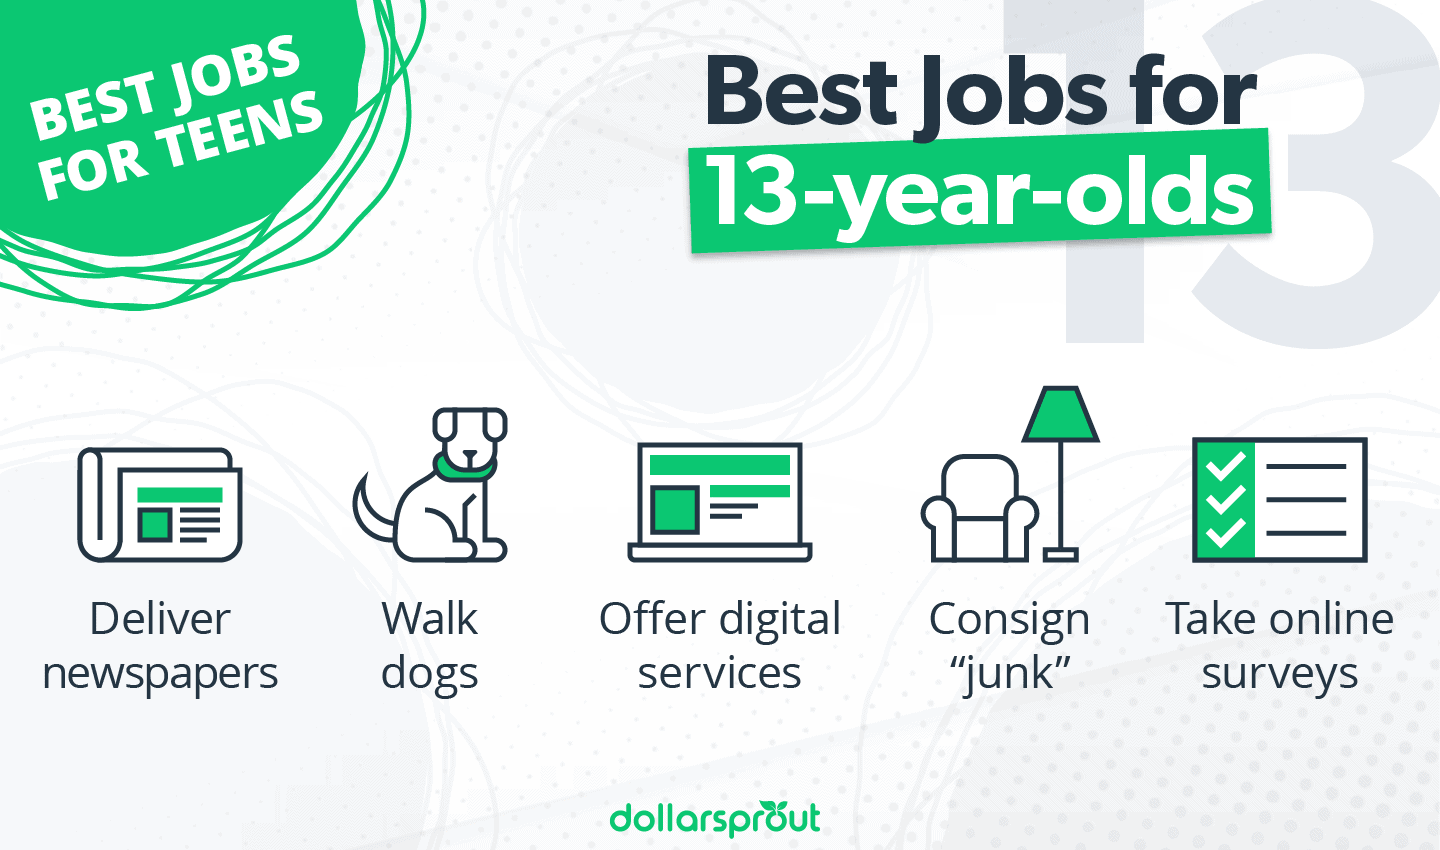 Best Jobs for 13-year-olds